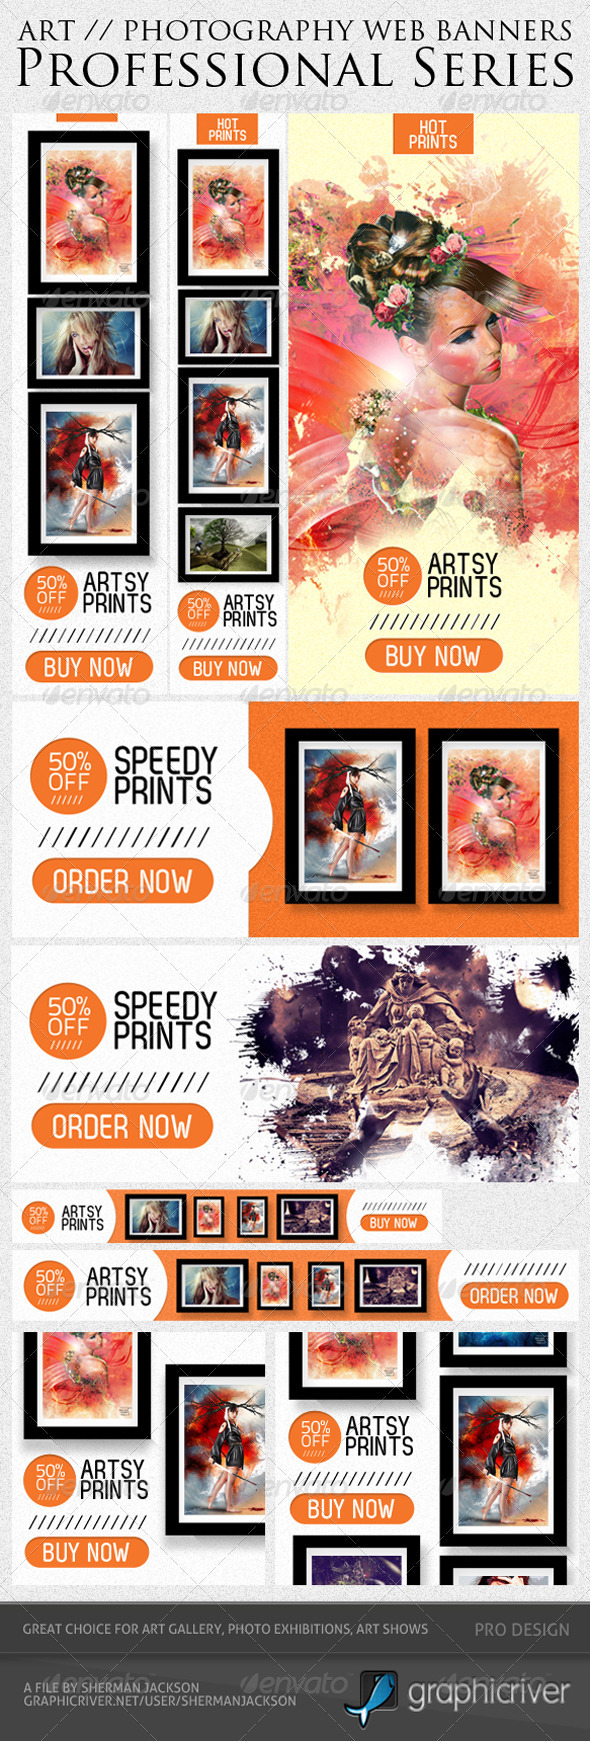 Art & Photography Web Banner Templates - Banners & Ads Web Elements